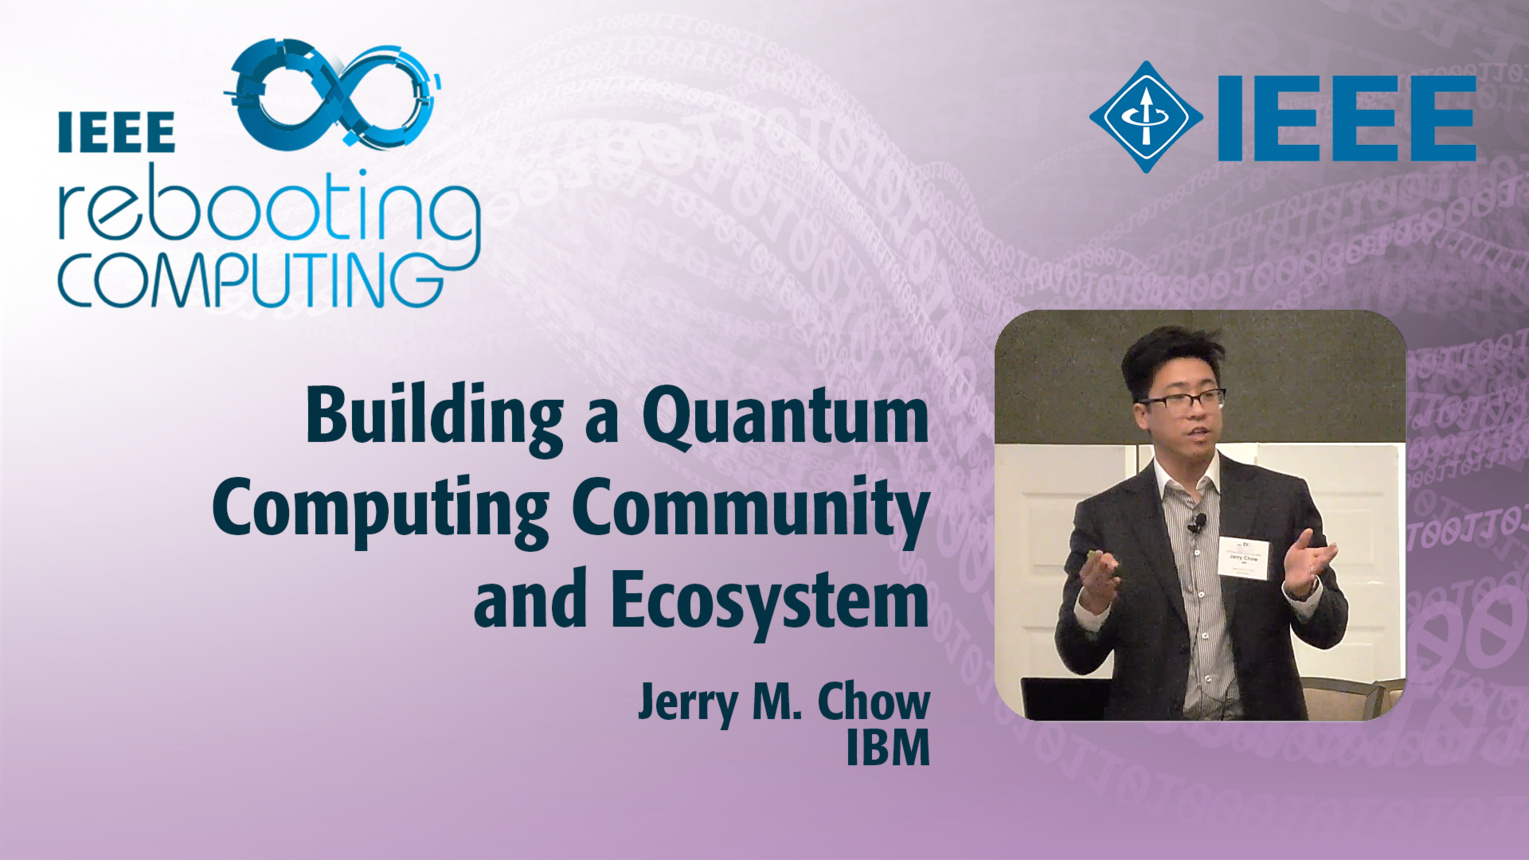 Building a Quantum Computing Community and Ecosystem: Jerry Chow at IEEE Rebooting Computing 2017